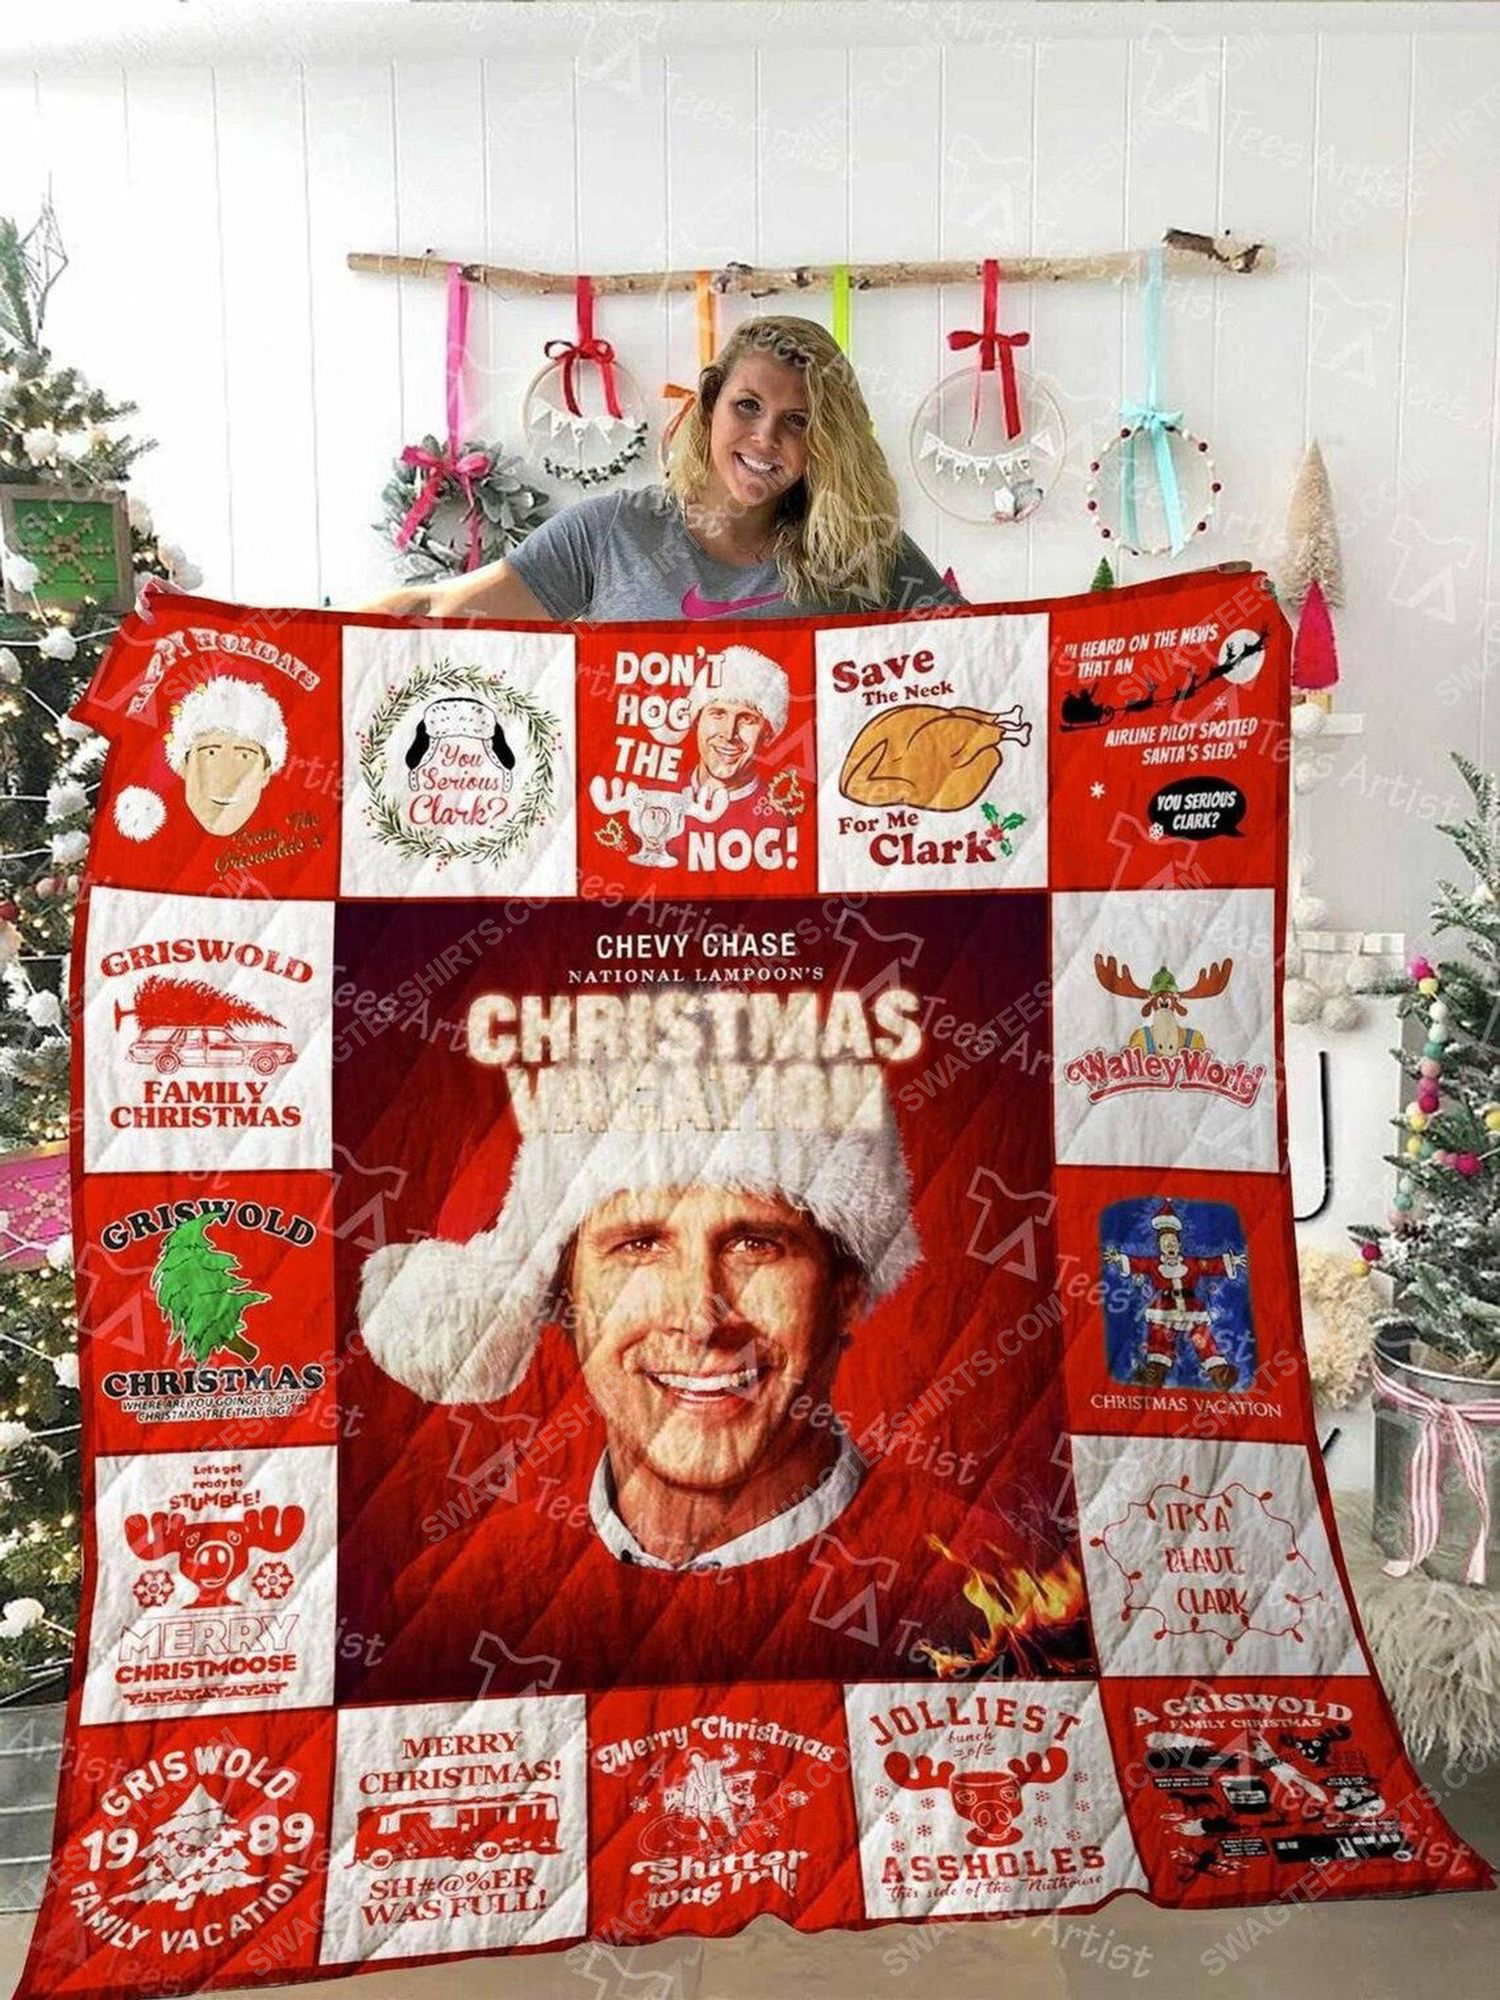 National lampoons christmas vacation griswold christmas blanket 2 - Copy (2)